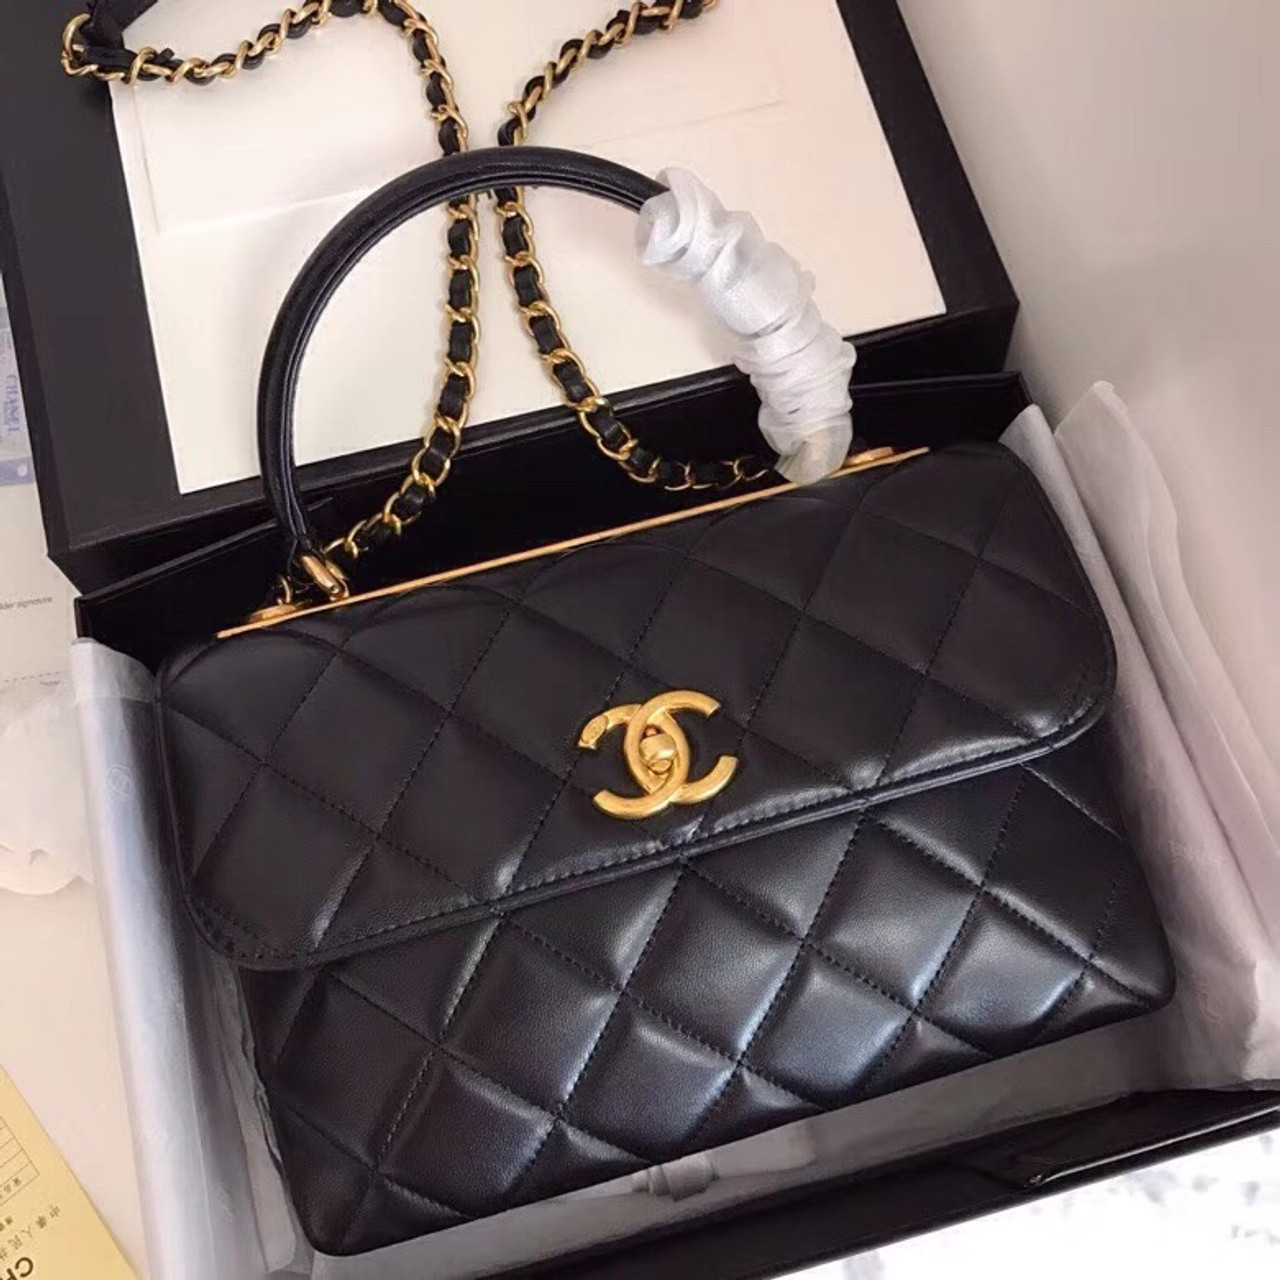 0233d2b9a629 Chanel Small Trendy CC Top Handle Bag Quilted Lambskin Black - Bella ...